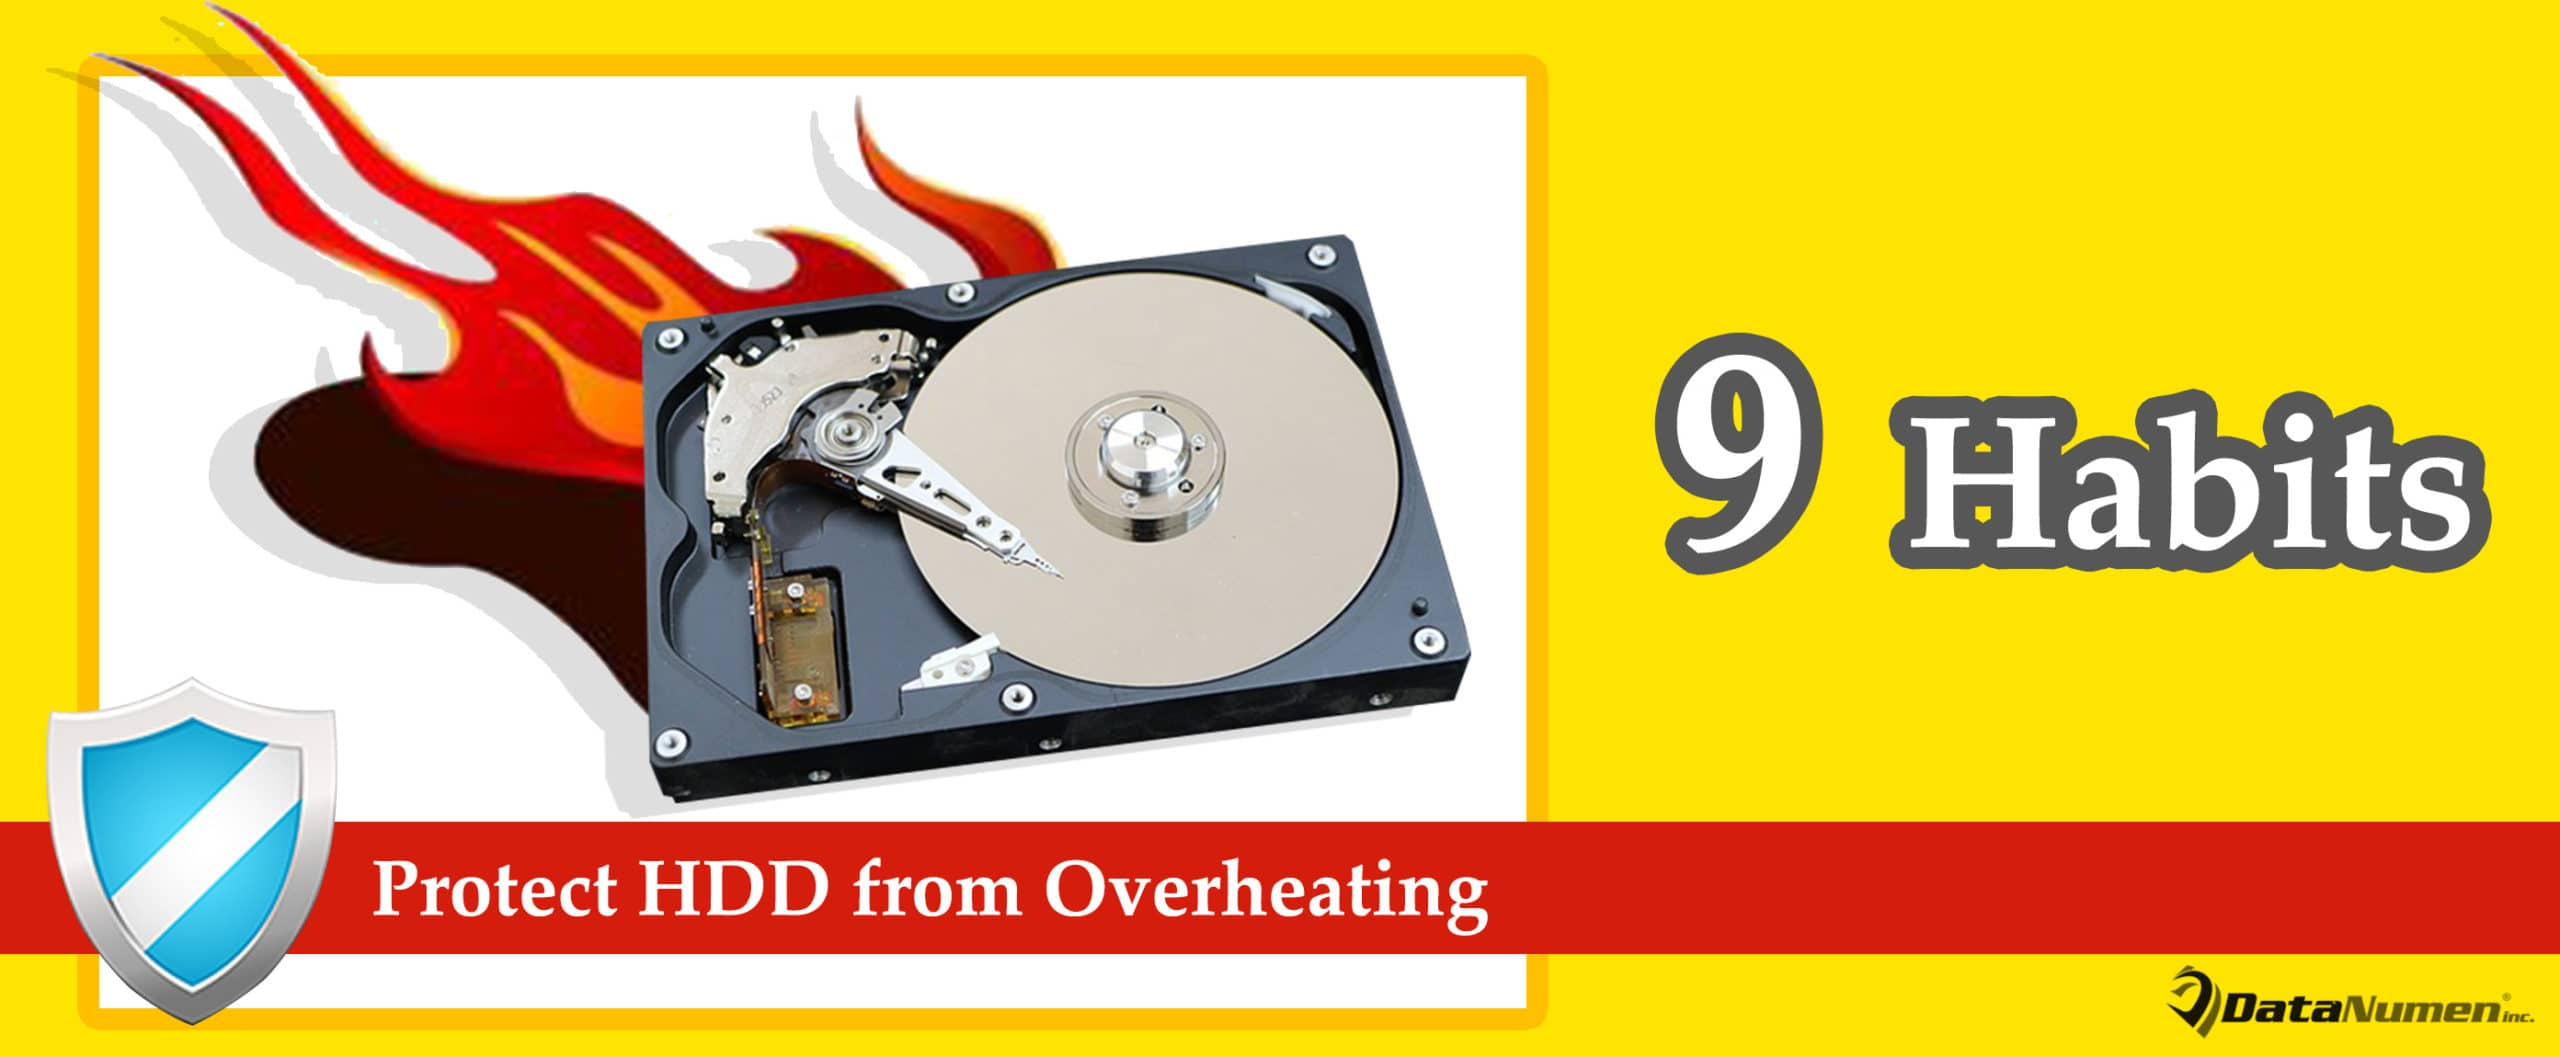 9 Daily Habits to Protect Your Hard Drive from Overheating